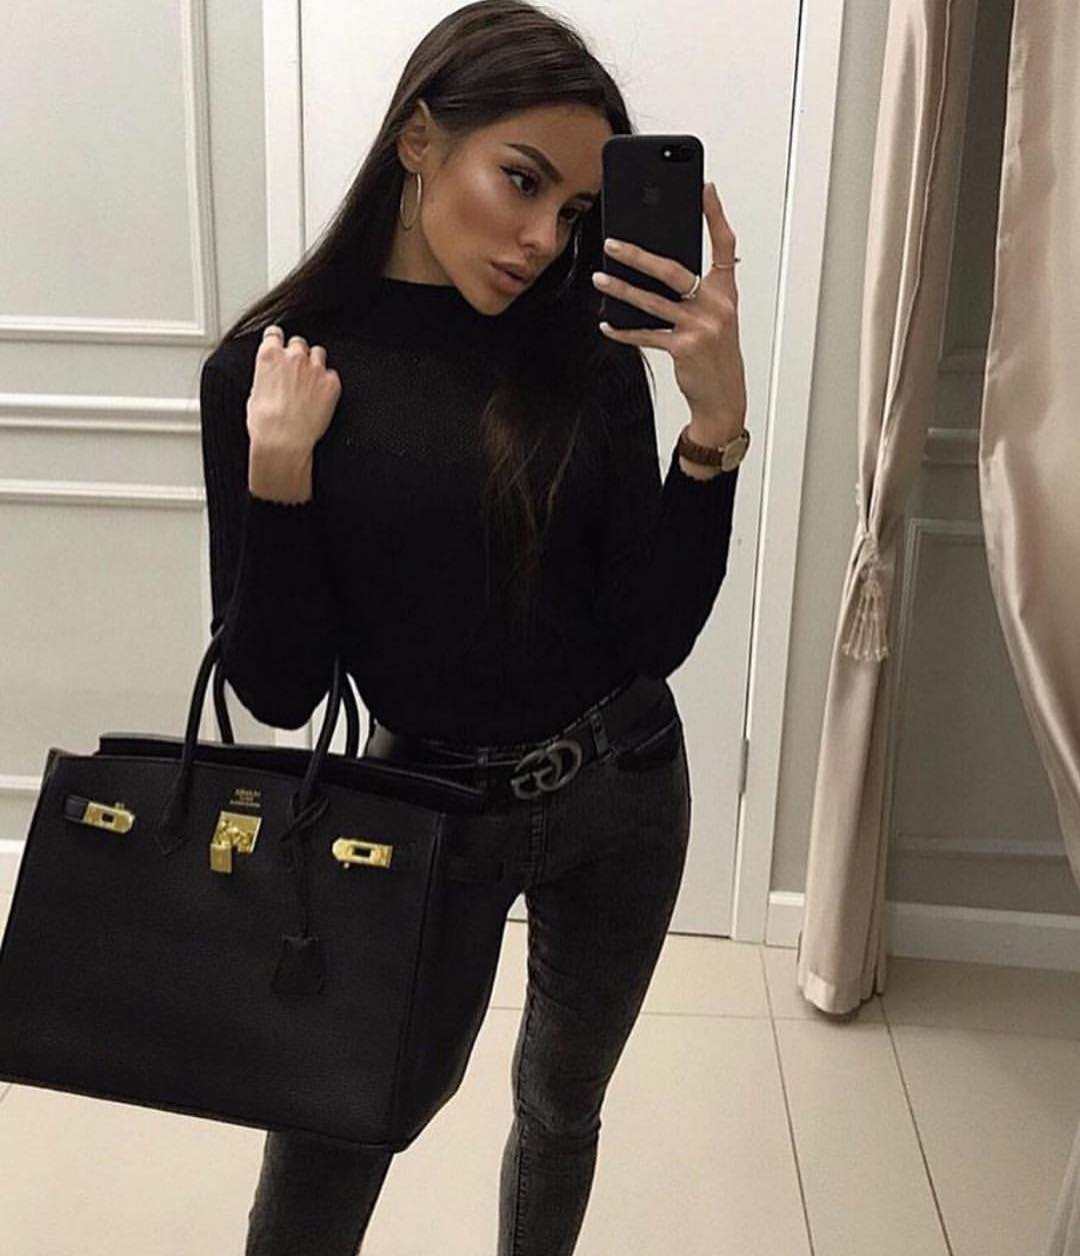 All Black OOTD: Sweater And Skinny Jeans 2020